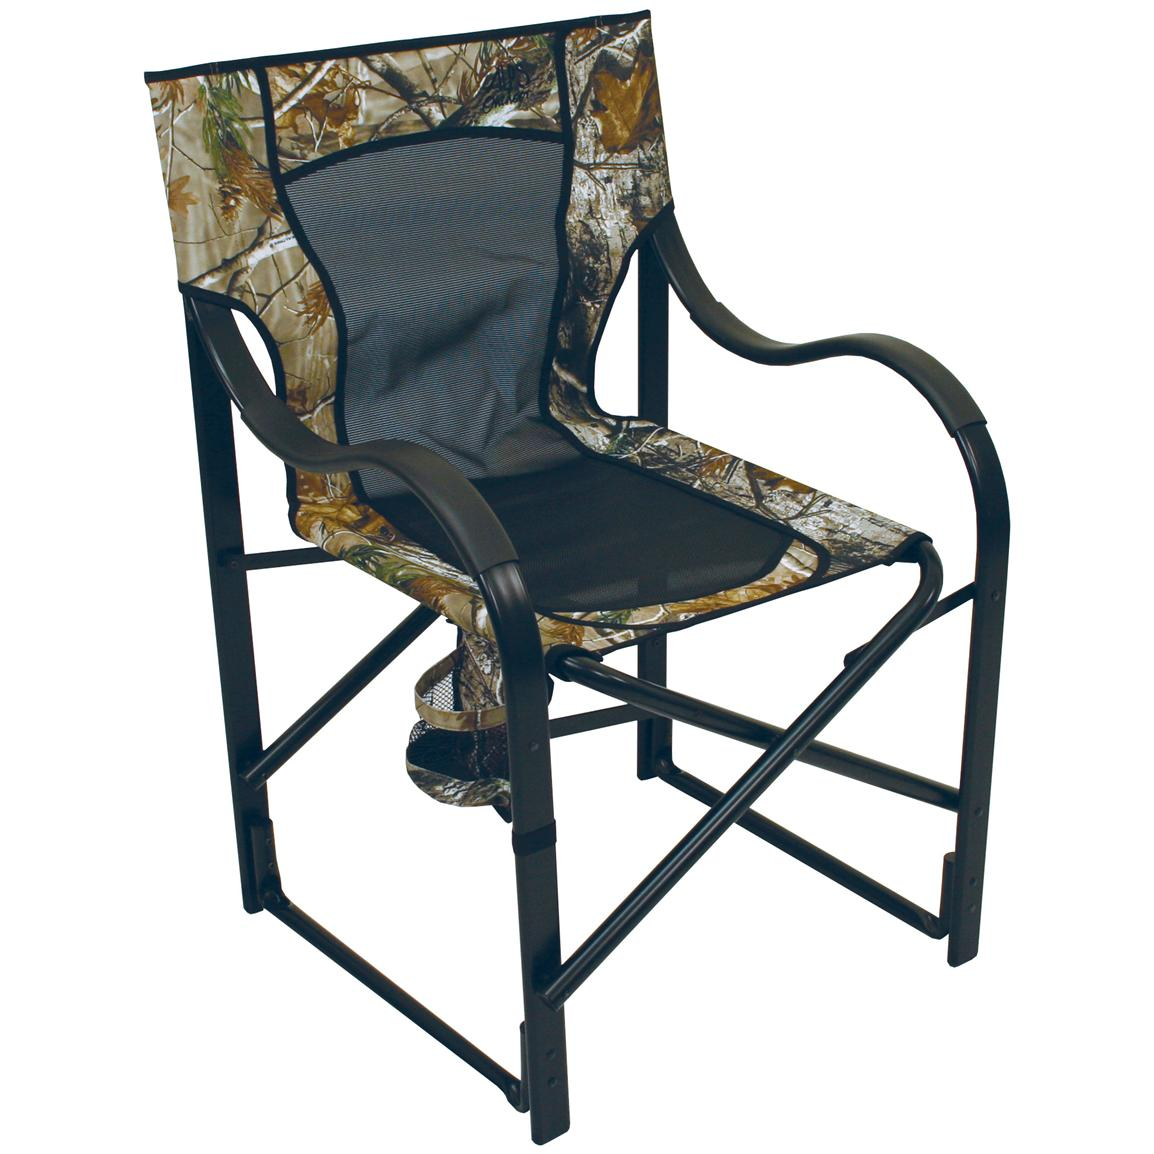 Alps Mountaineering Chair Alps Mountaineering Camo Camp Chair 177068 Chairs At